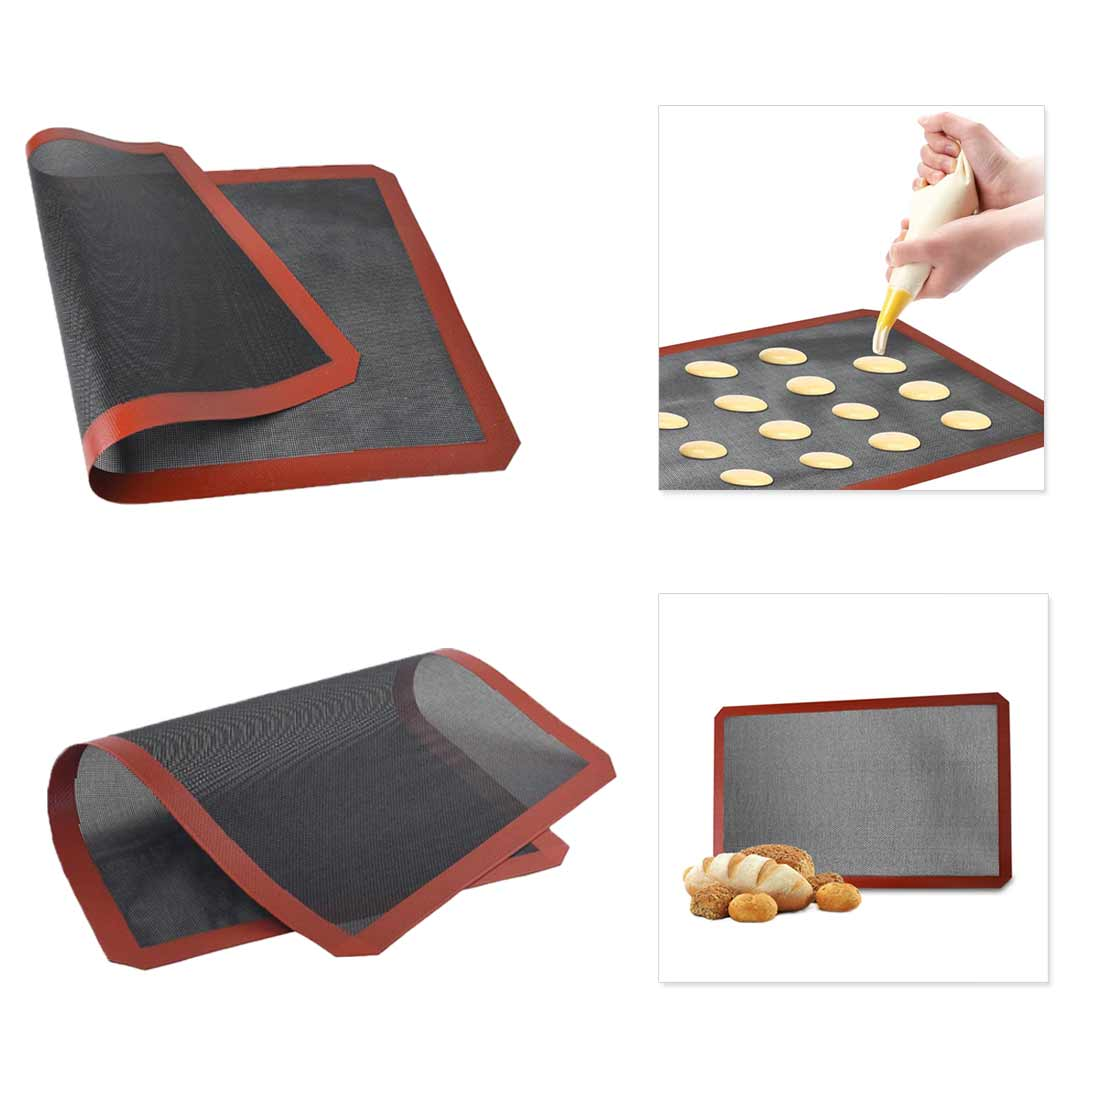 Non Stick Oven Sheet Liner Tool For Cookie Bread Macaroon Biscuit Perforated Silicone Baking Mat Kitchen Bakeware Accessories in Baking Mats Liners from Home Garden